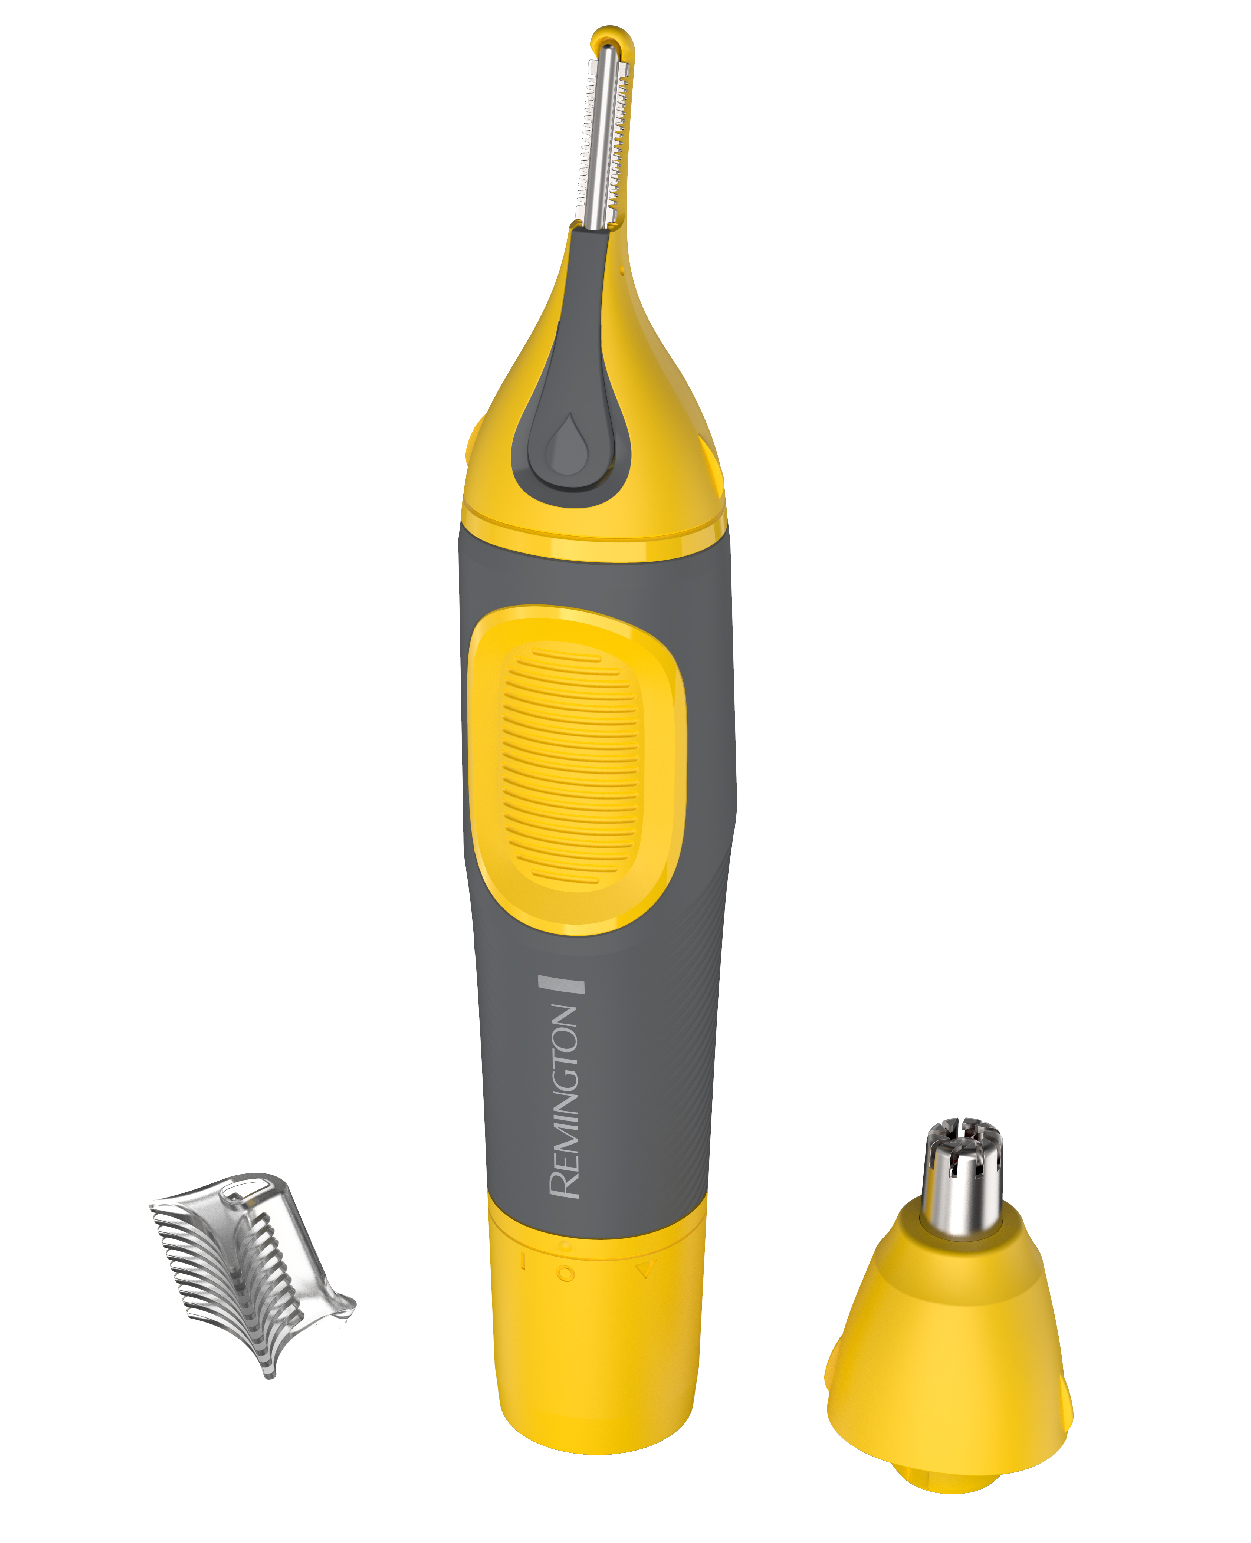 Remington Virtually Indestructible Nose, Ear & Brow Trimmer, Yellow, NE3871